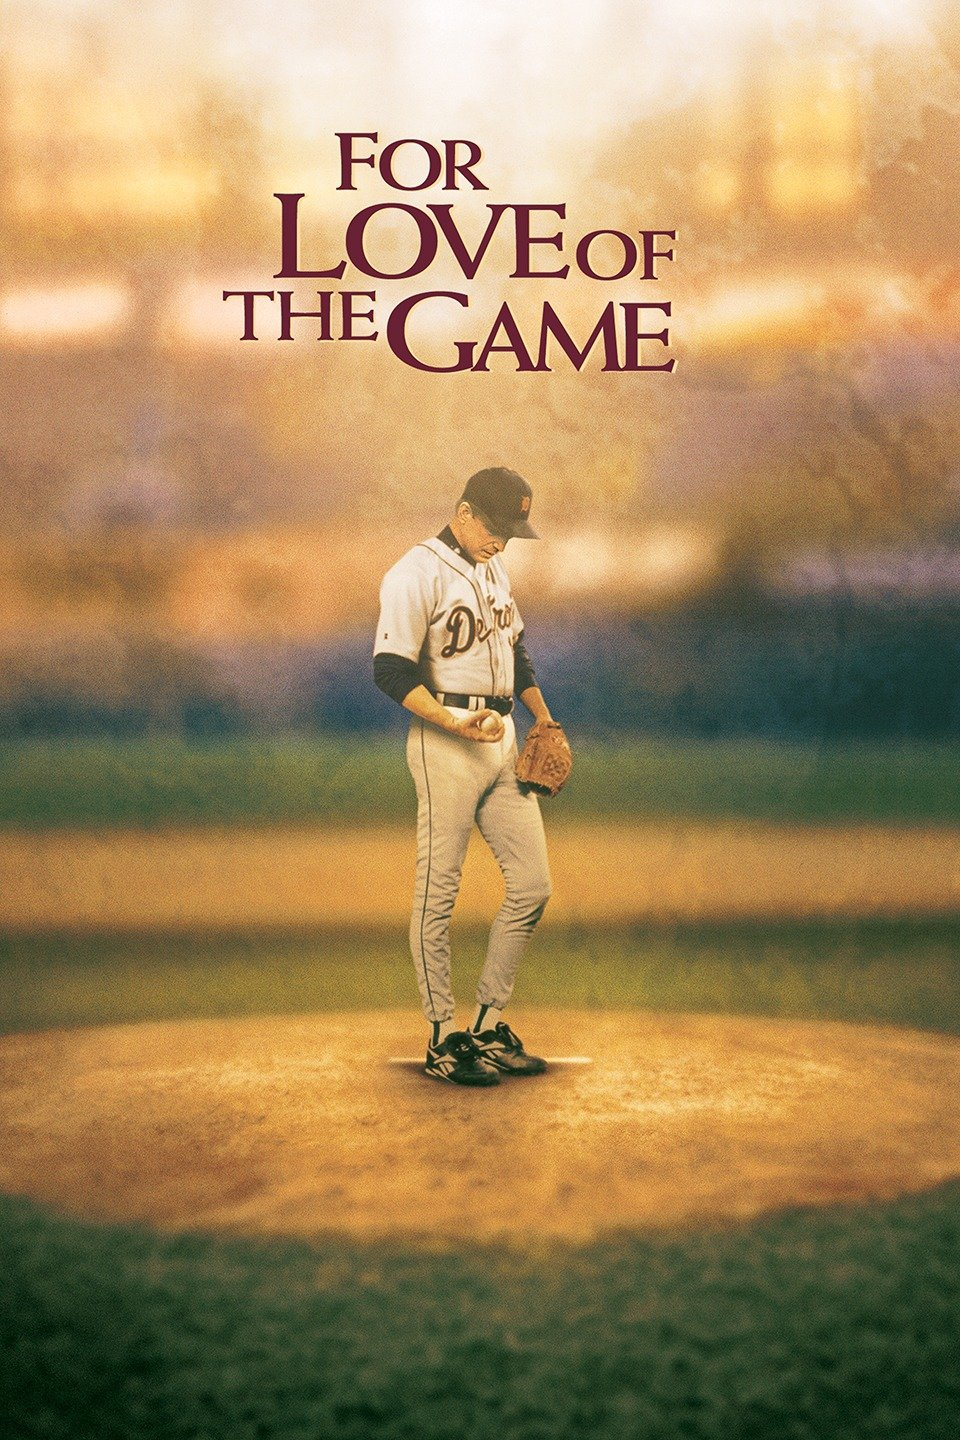 best baseball movies - for the love of the game